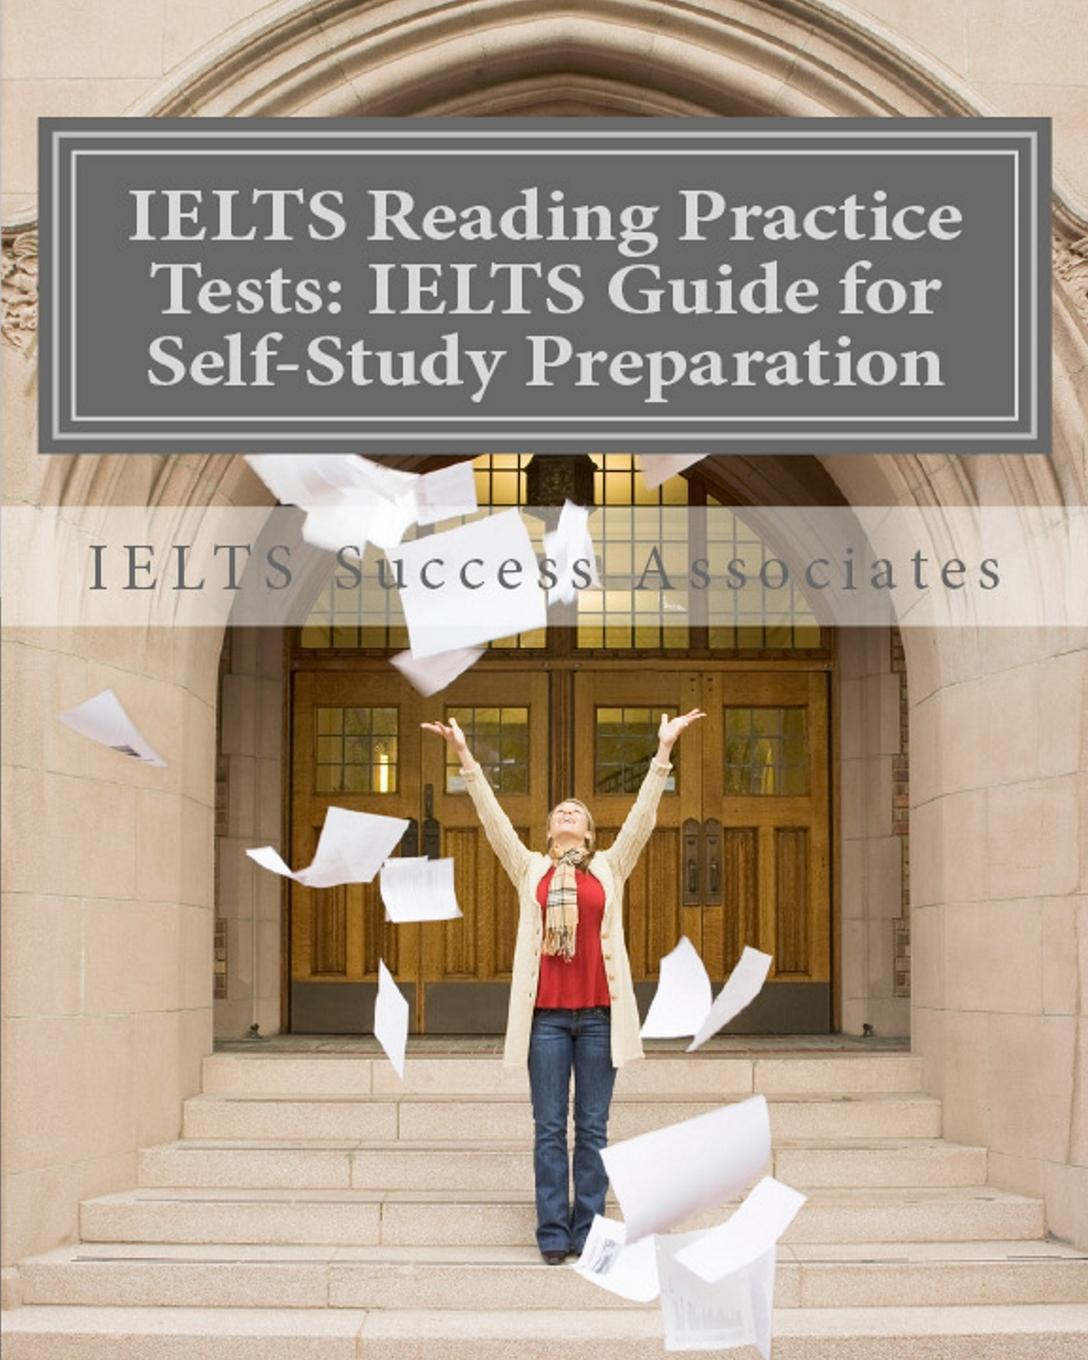 IELTS Success Associates IELTS Reading Practice Tests. IELTS Guide for Self-Study Test Preparation for IELTS for Academic Purposes набор деревянных заготовок для декупажа филькина грамота цветочки